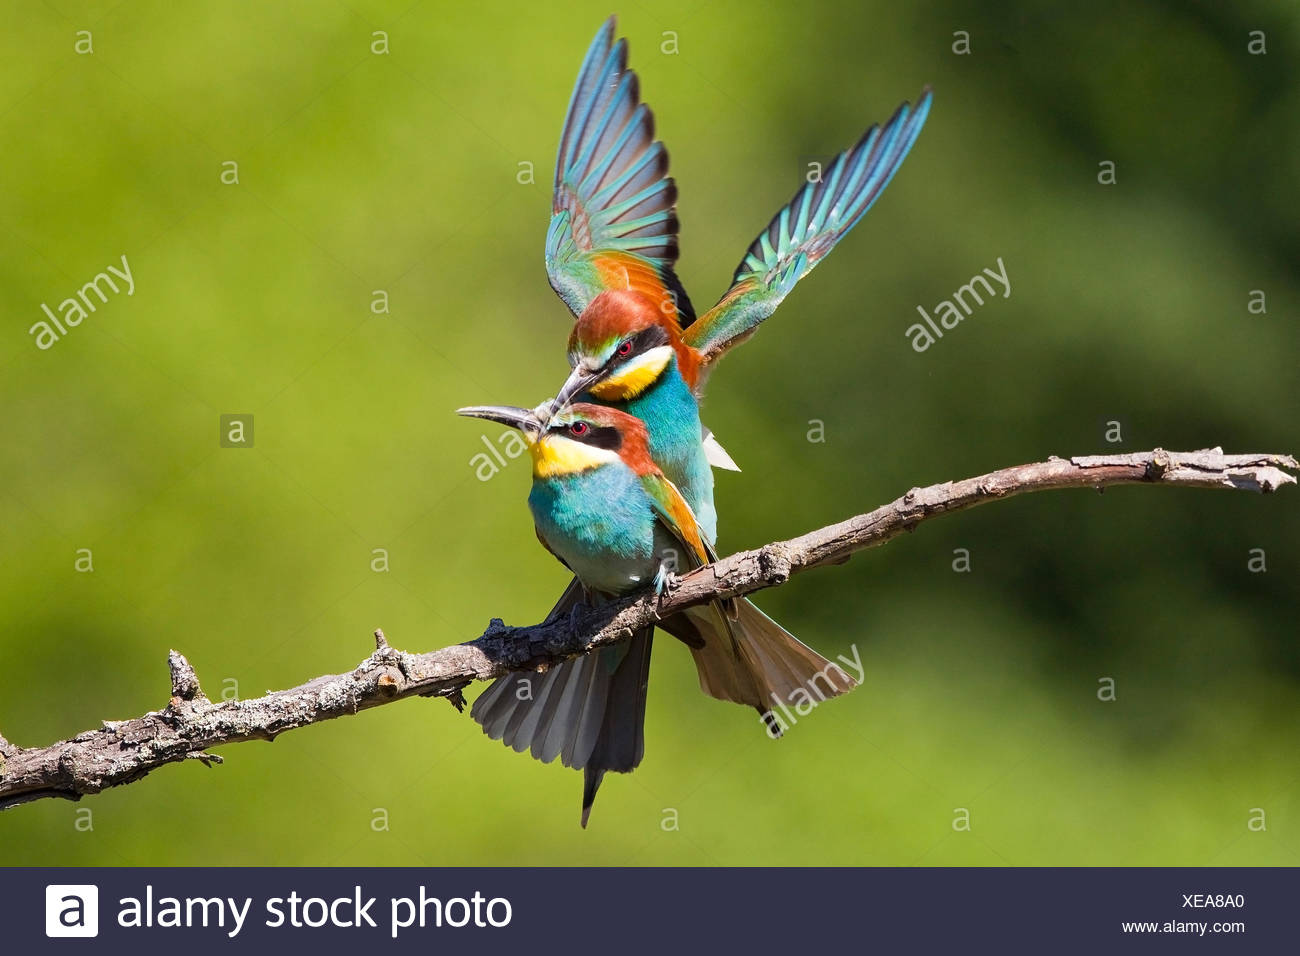 Mating European Bee-eaters on Branch - Stock Image